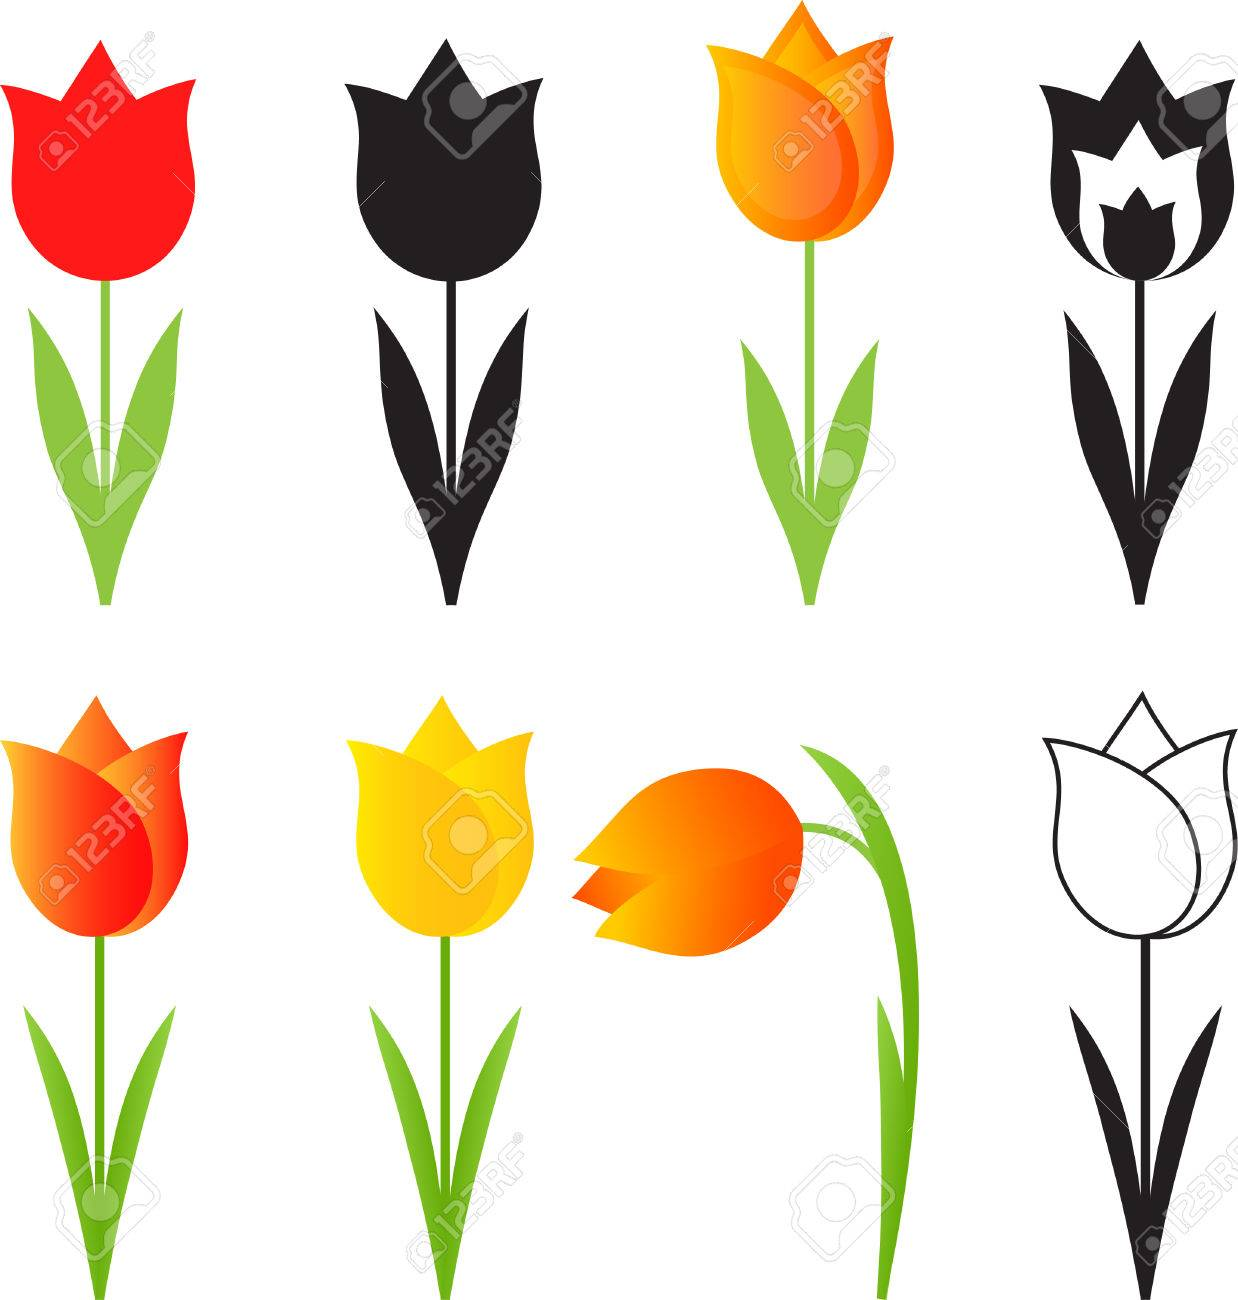 1238x1300 Isolated Spring Flowers Vectors, Tulip Vectors Royalty Free